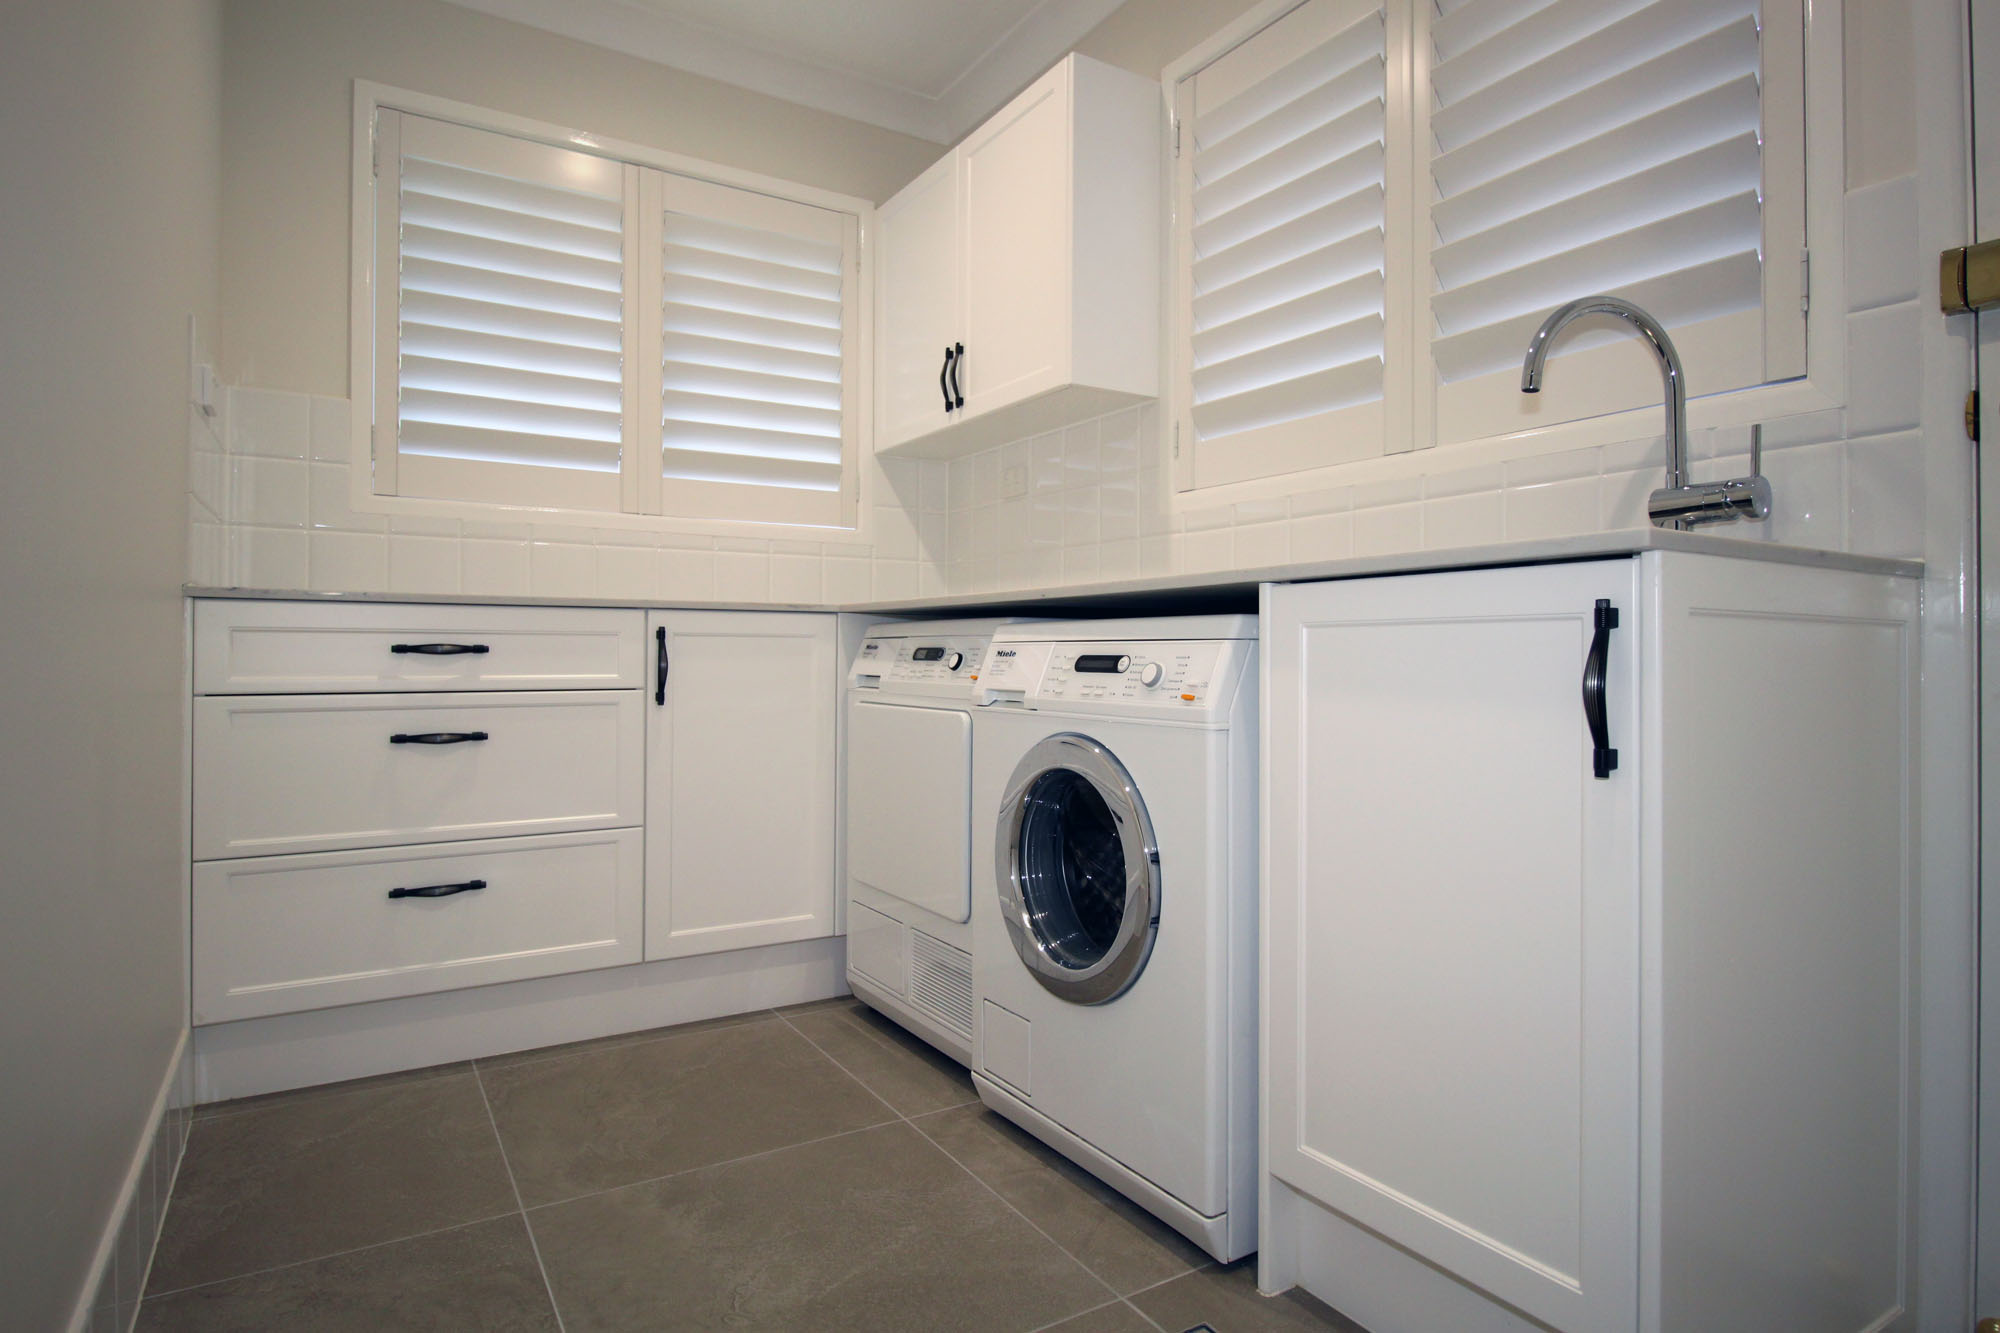 Laundry Renovations - Brisbane Builder Bathroom and Kitchen design